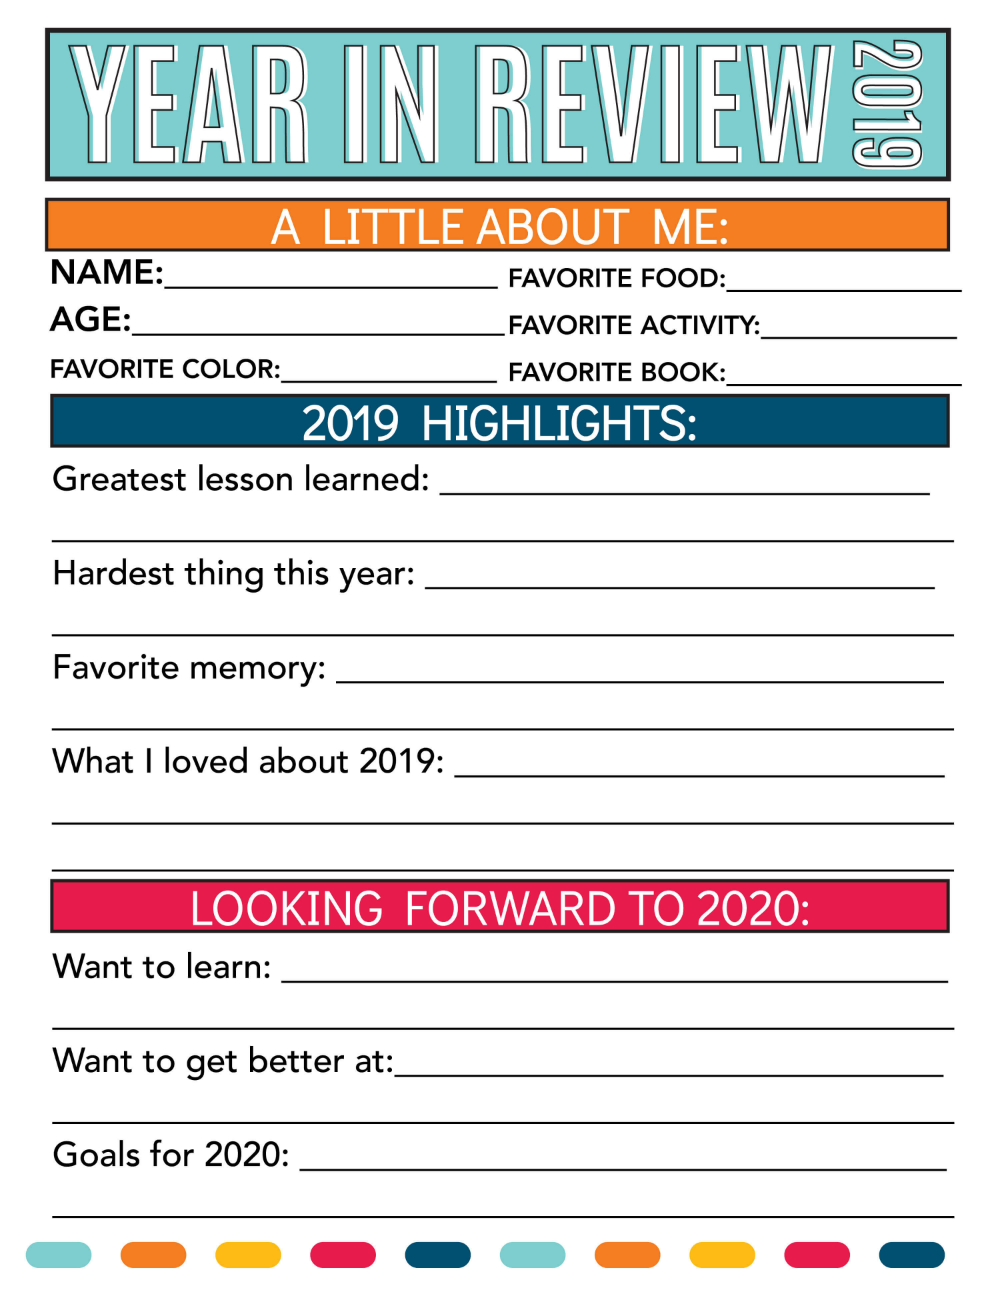 PRINTABLE NEW YEAR'S RESOLUTION FOR KIDS 2019 in 2020